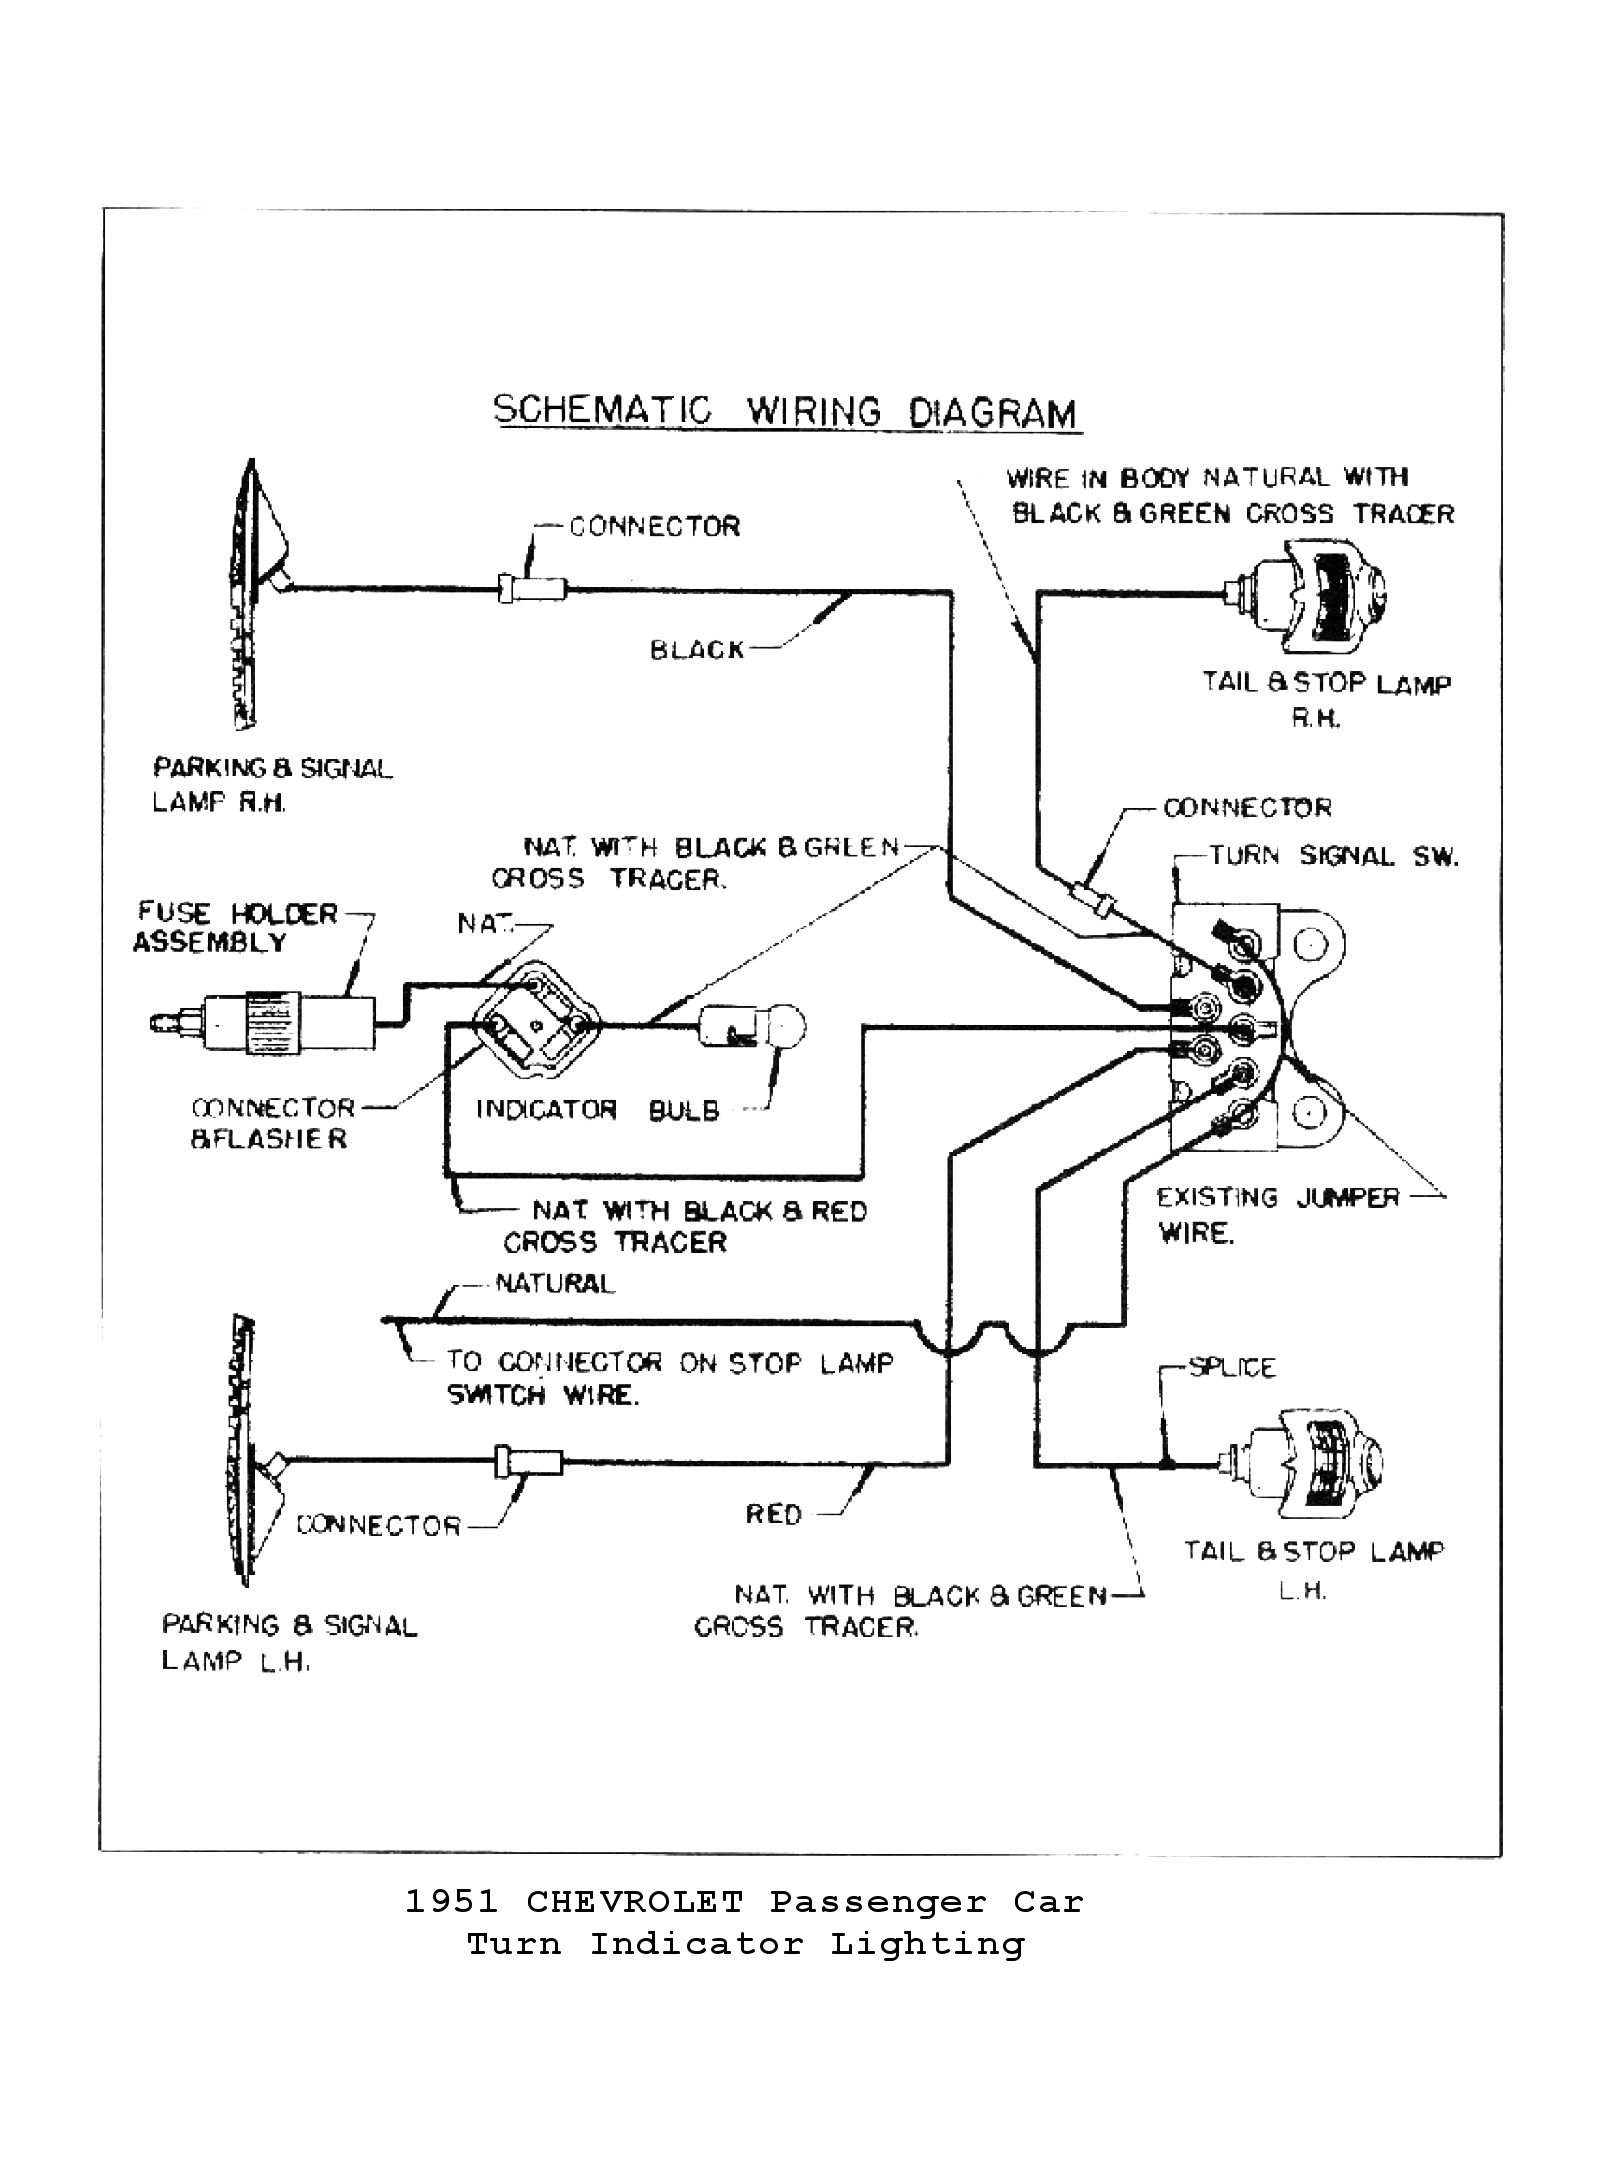 5152turnsignals chevy wiring diagrams 1953 chevy bel air wiring diagram at suagrazia.org